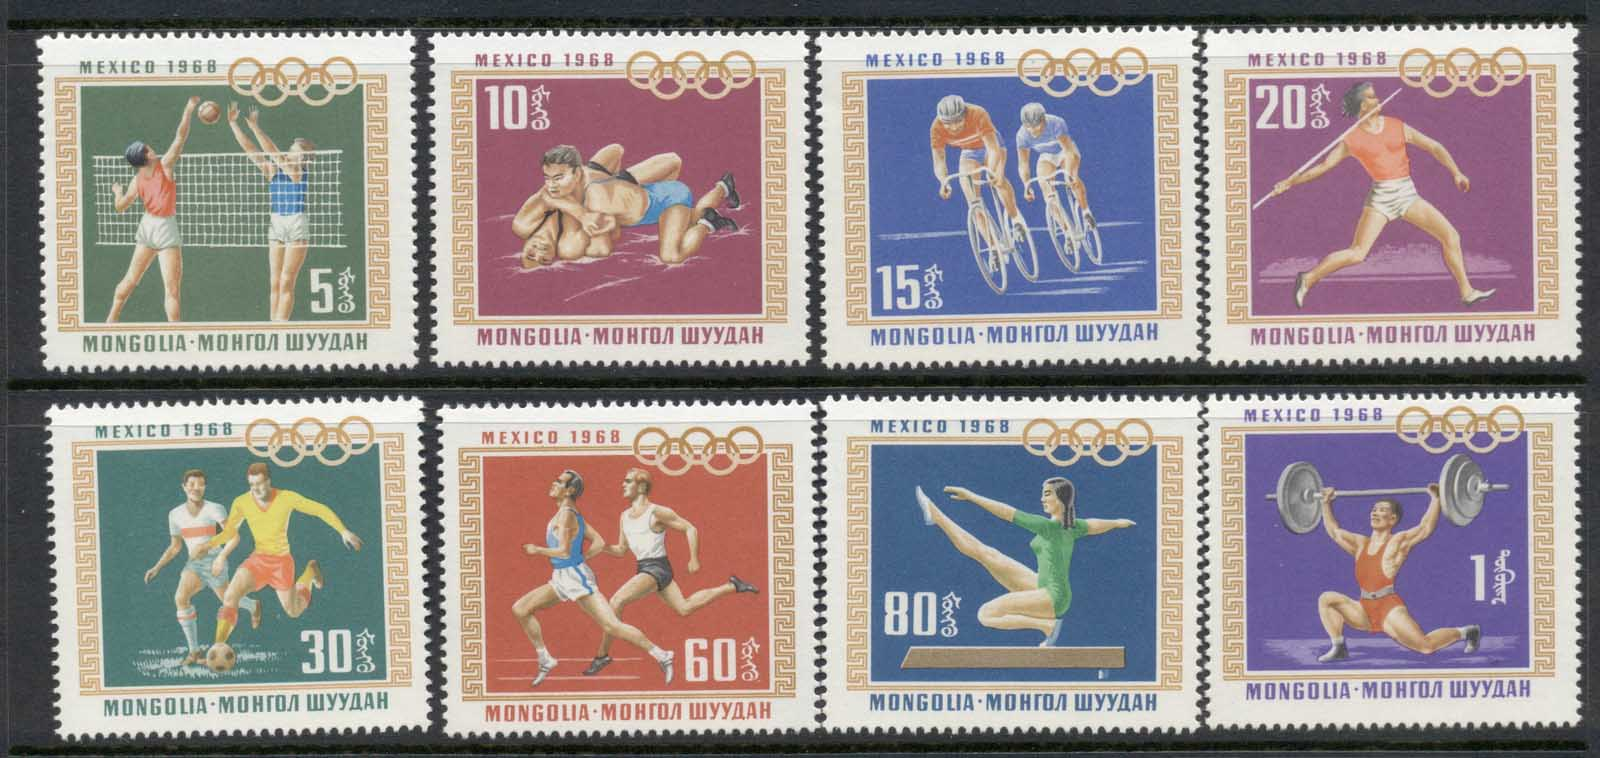 Mongolia 1968 Summer Olympics Mexico City MUH